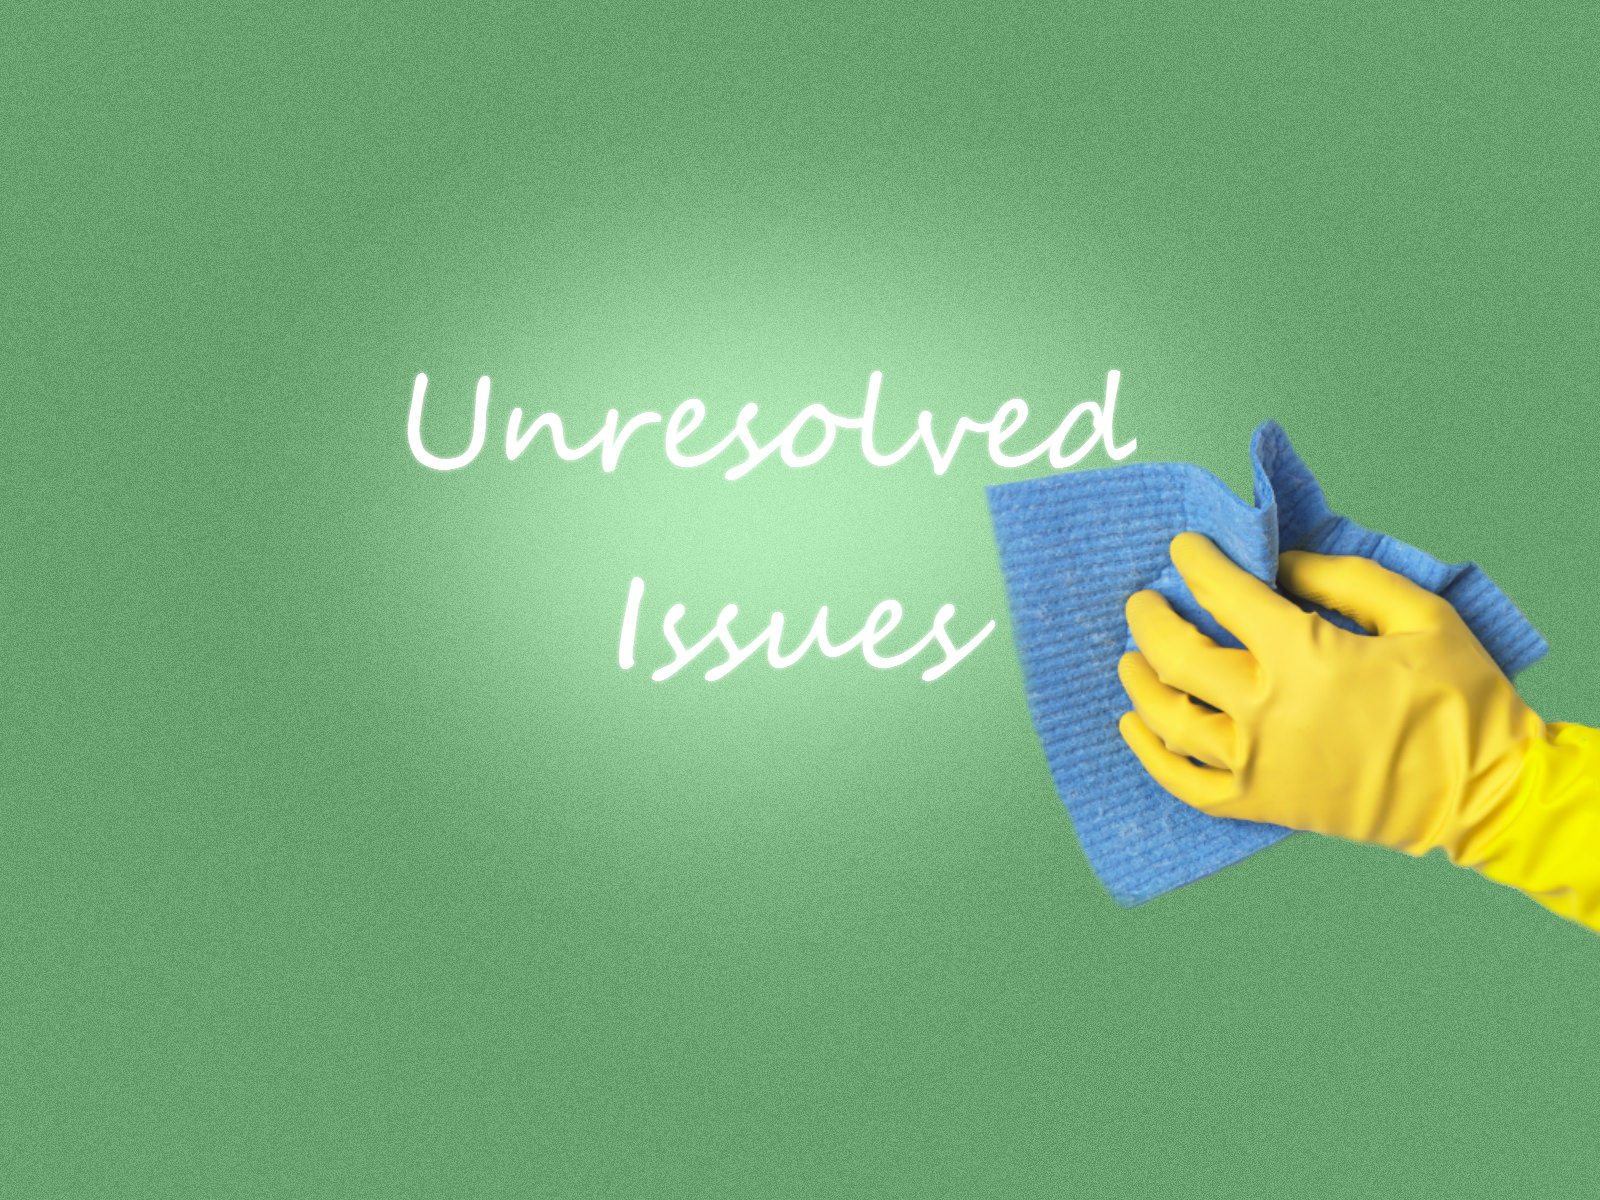 clean unresolved issues